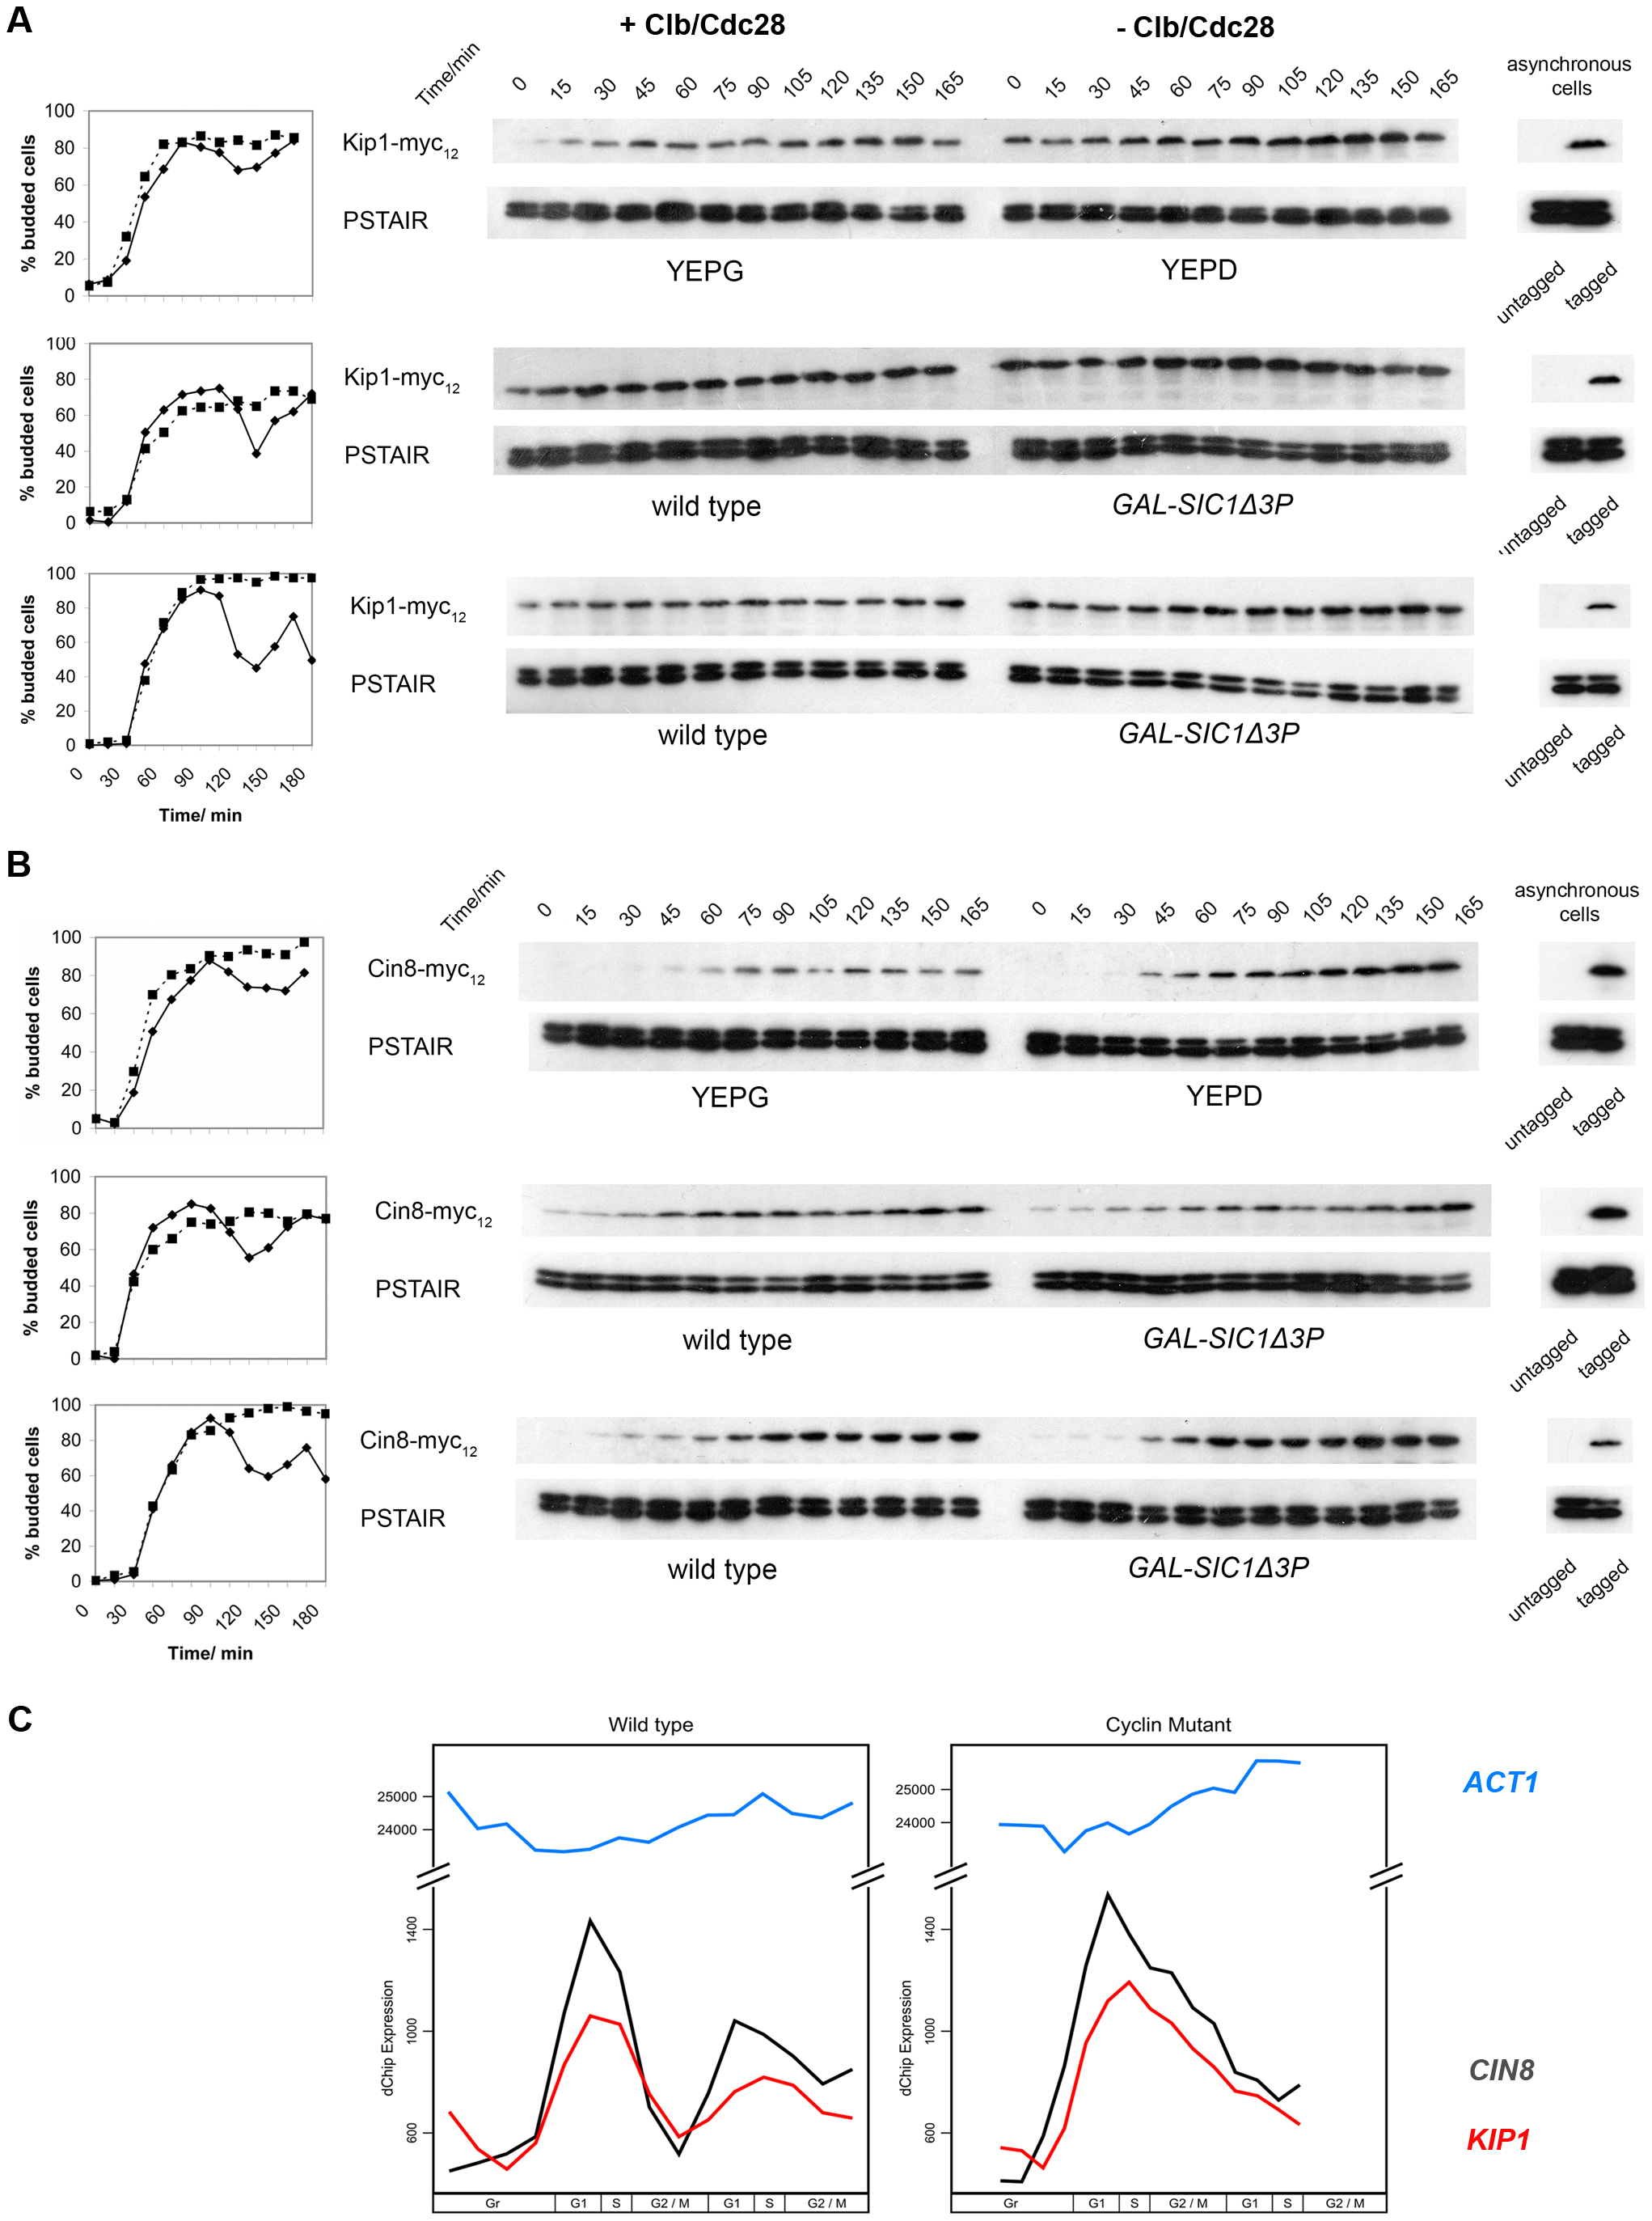 Kip1 and Cin8 protein and mRNA levels in the presence and the absence of active Clb/Cdc28 kinase.